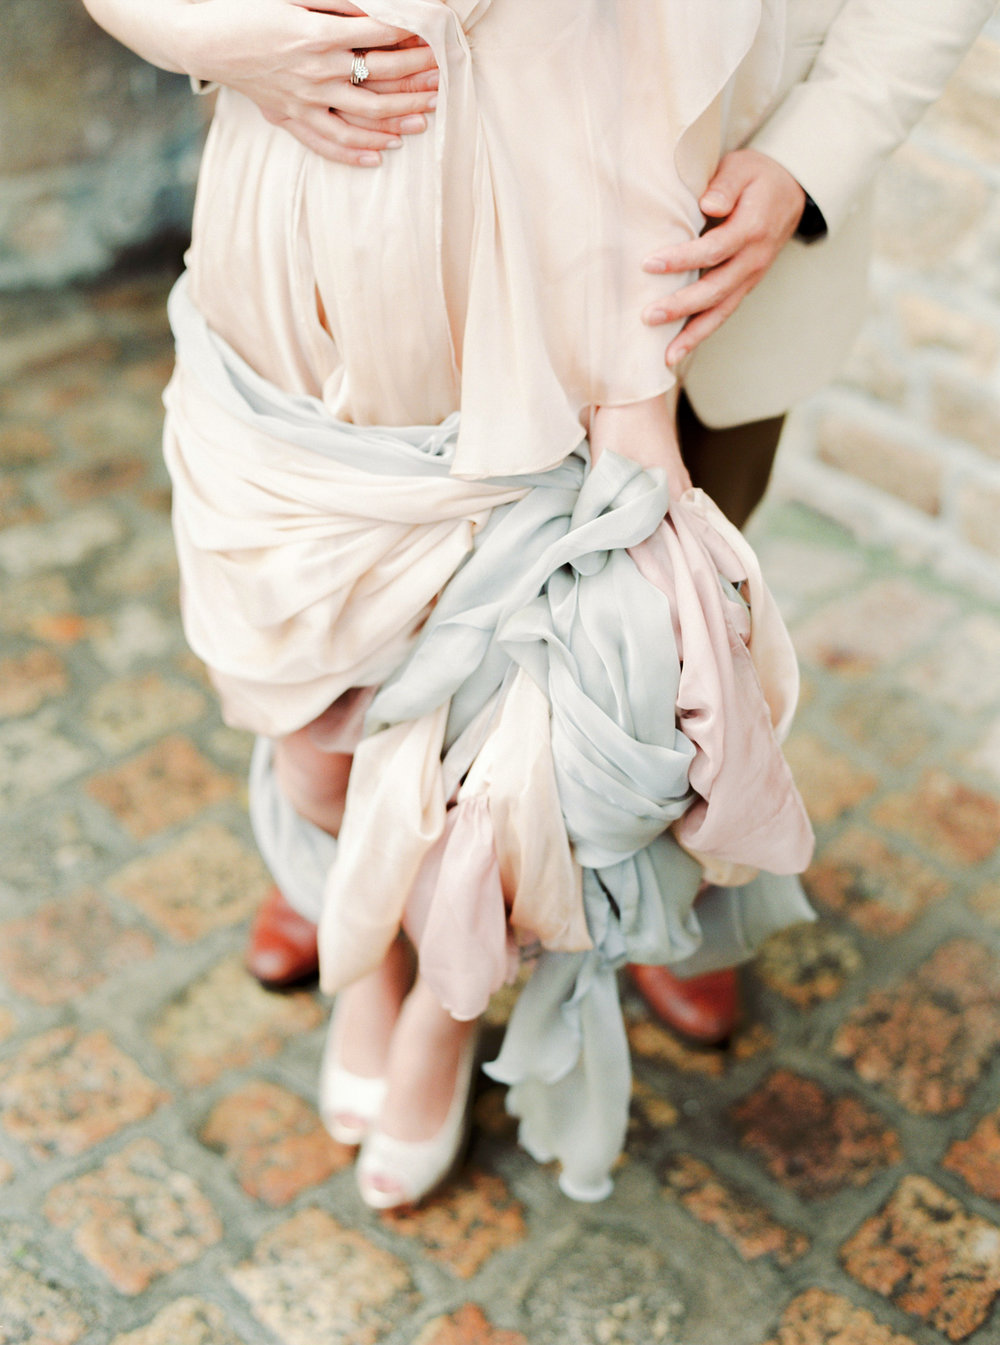 Destination engagement _ engagement in france _ mont saint-michel _ engagement photographer _ france wedding photographer _ 08.jpg